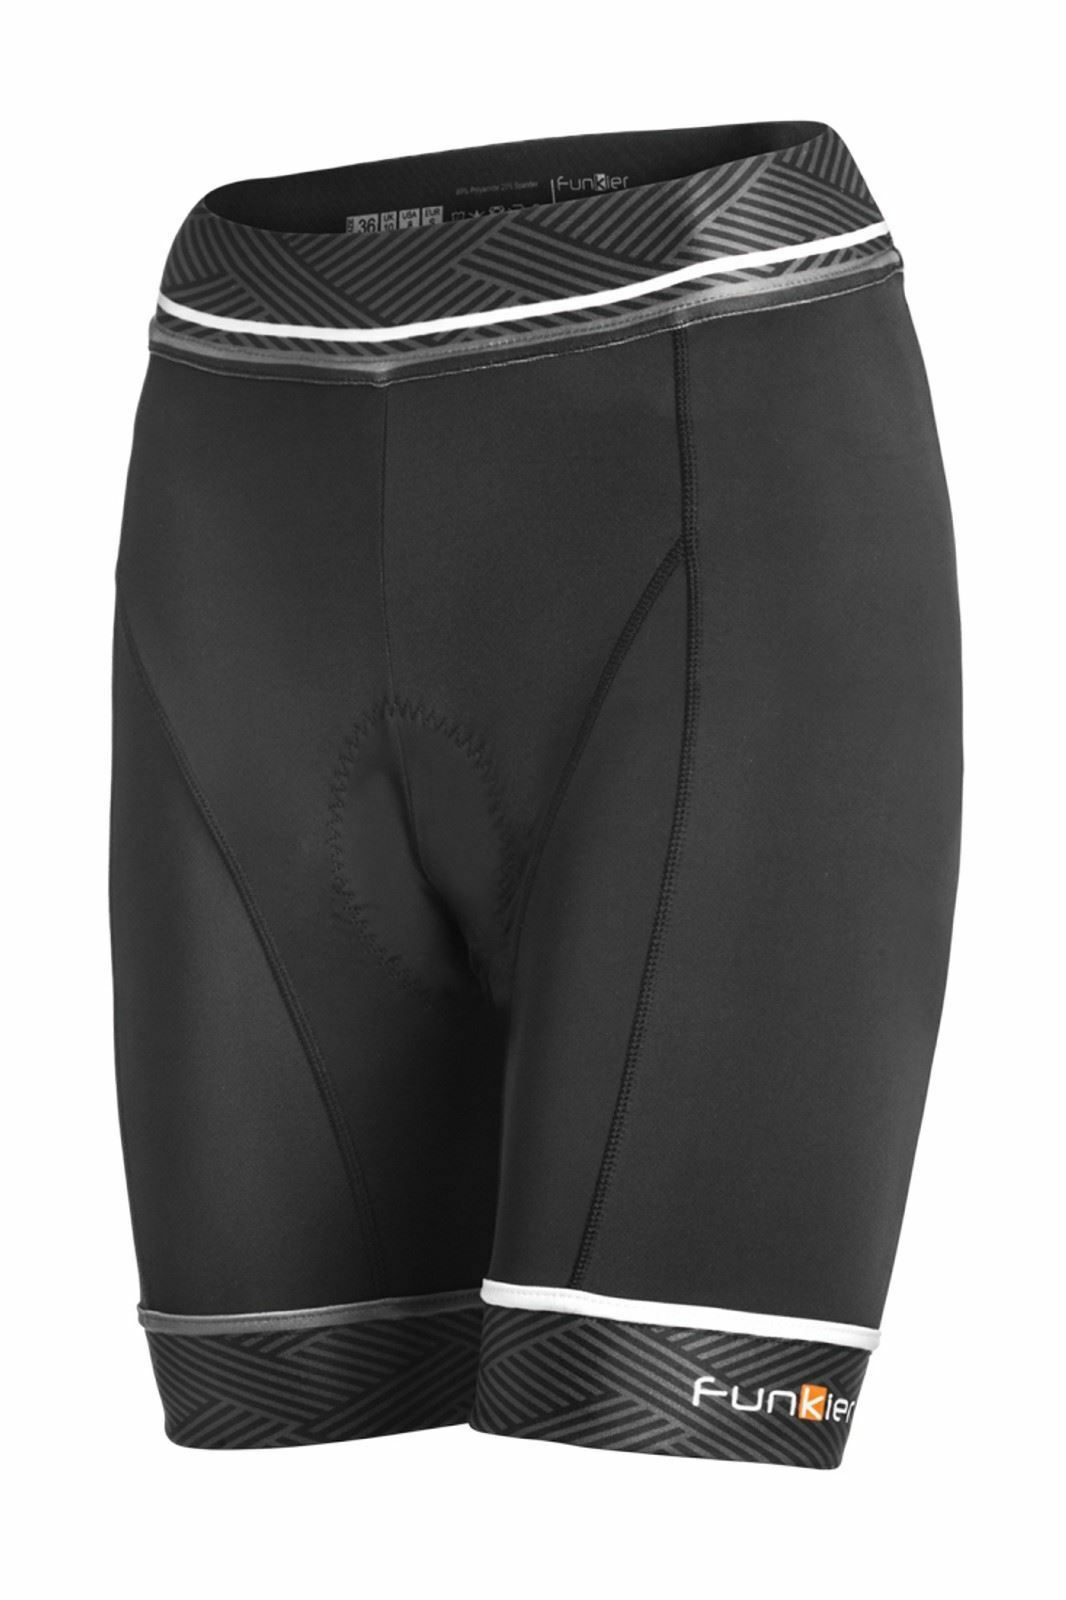 Cycling Shorts Funkier Ridesse 2017 Ladies 8 Panel  B-13 pad Small Soprts Wear  first-class service